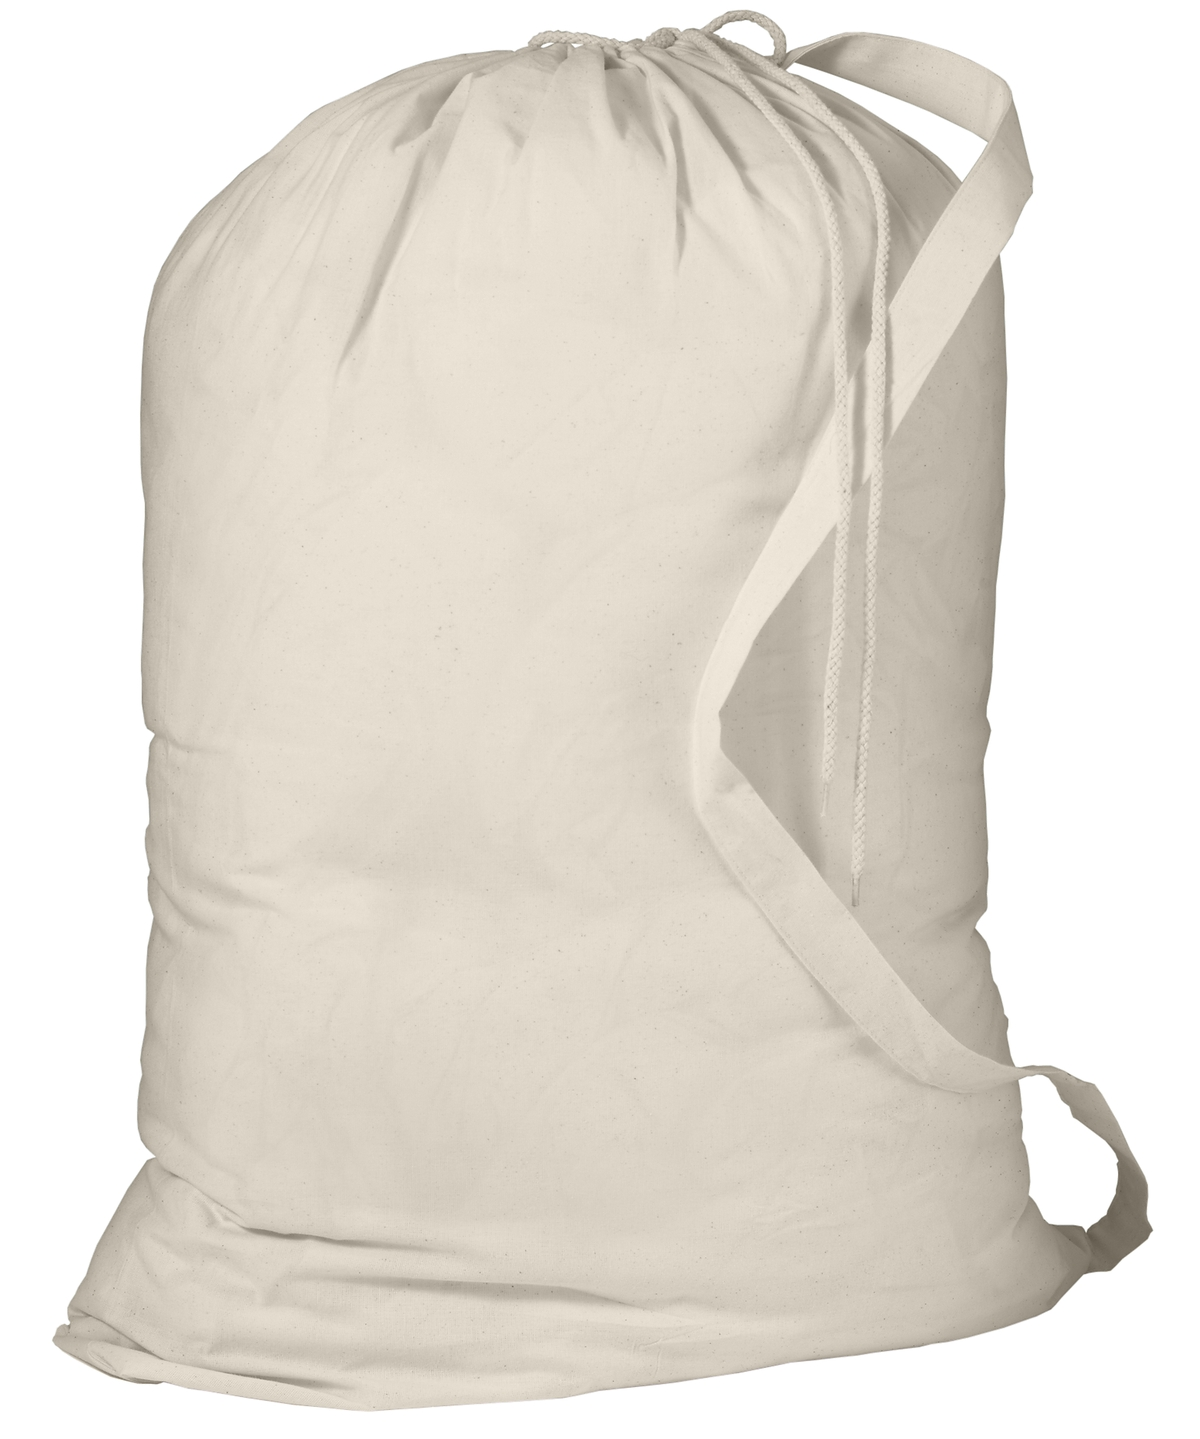 Port Authority ®  - Laundry Bag.  B085 - Natural